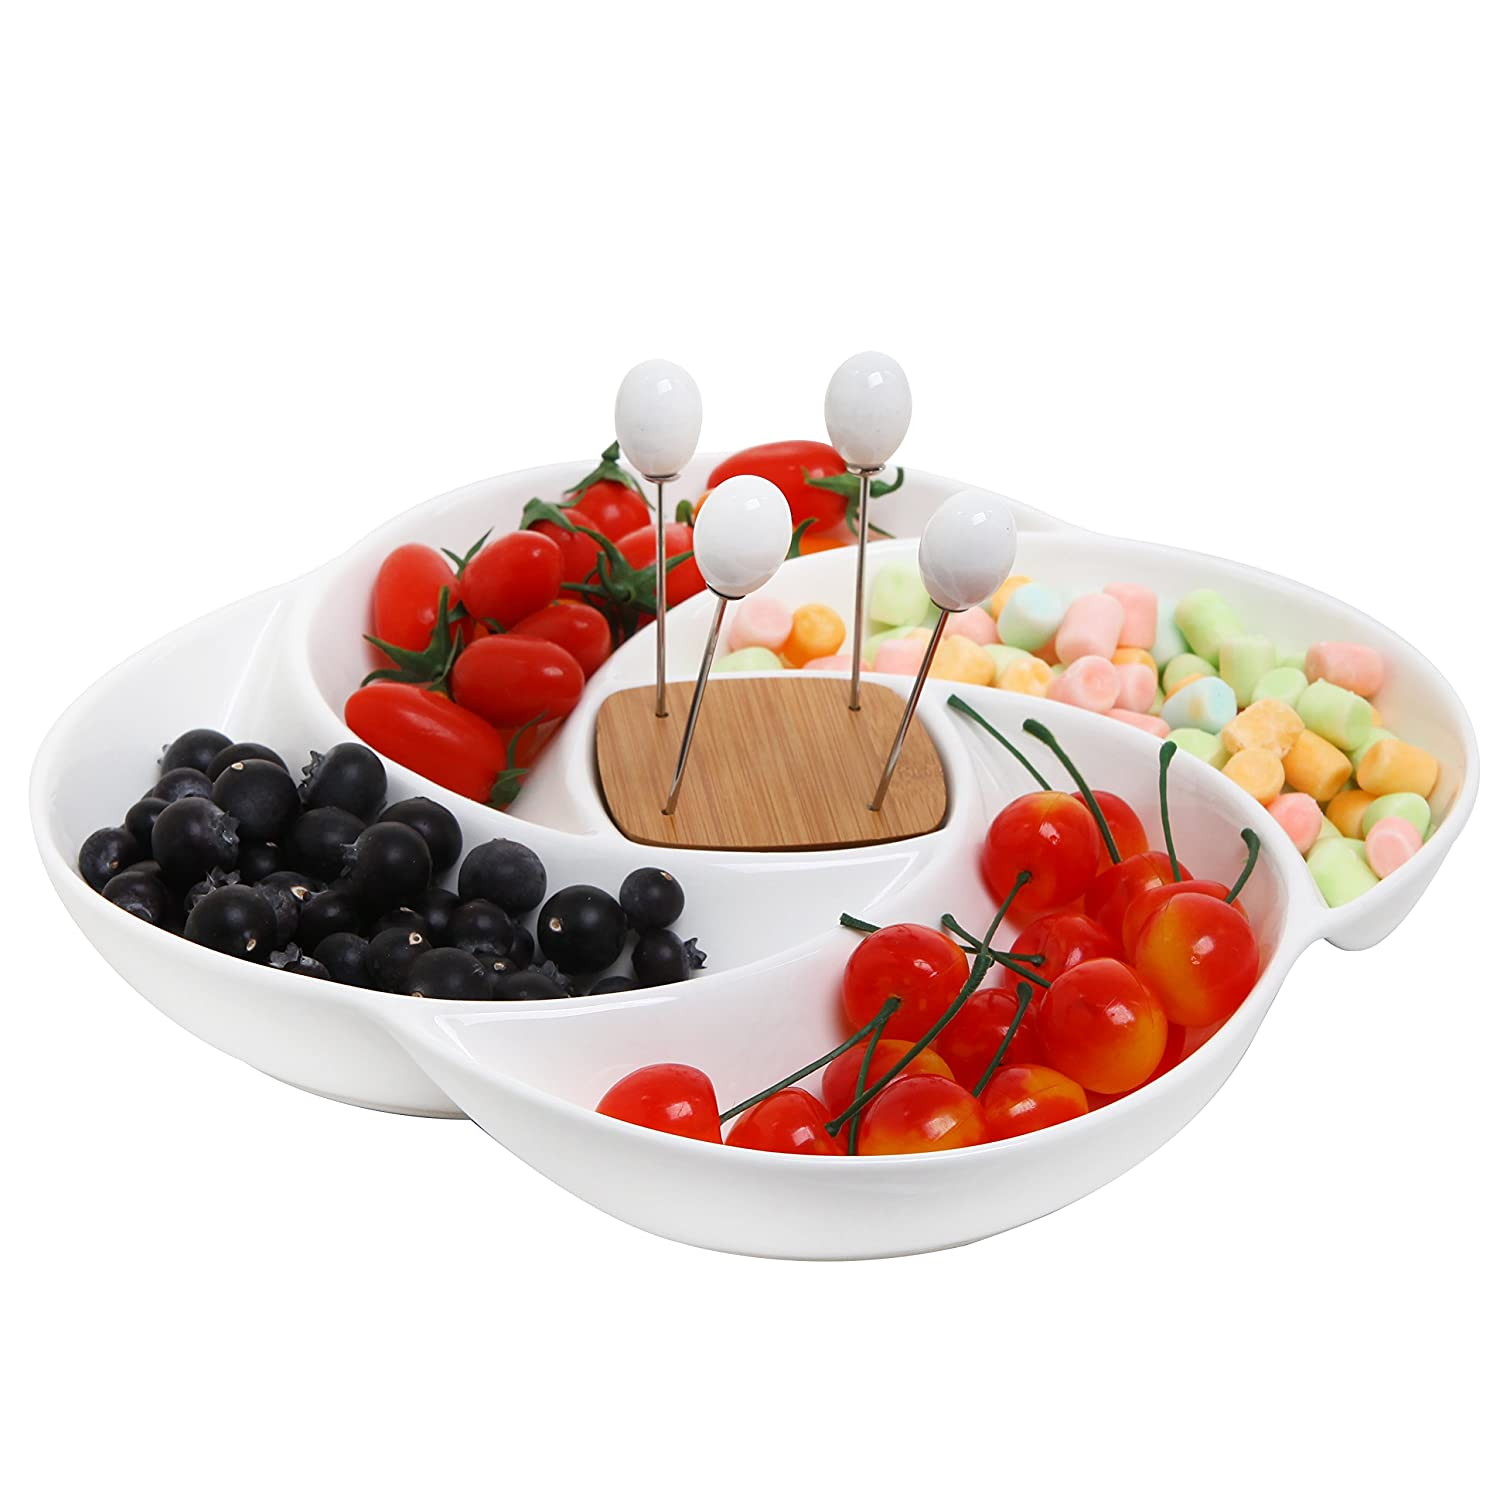 Decorative White Ceramic Appetizer Serving Platter Tray With Food Picks And Wood Holder by My Gift